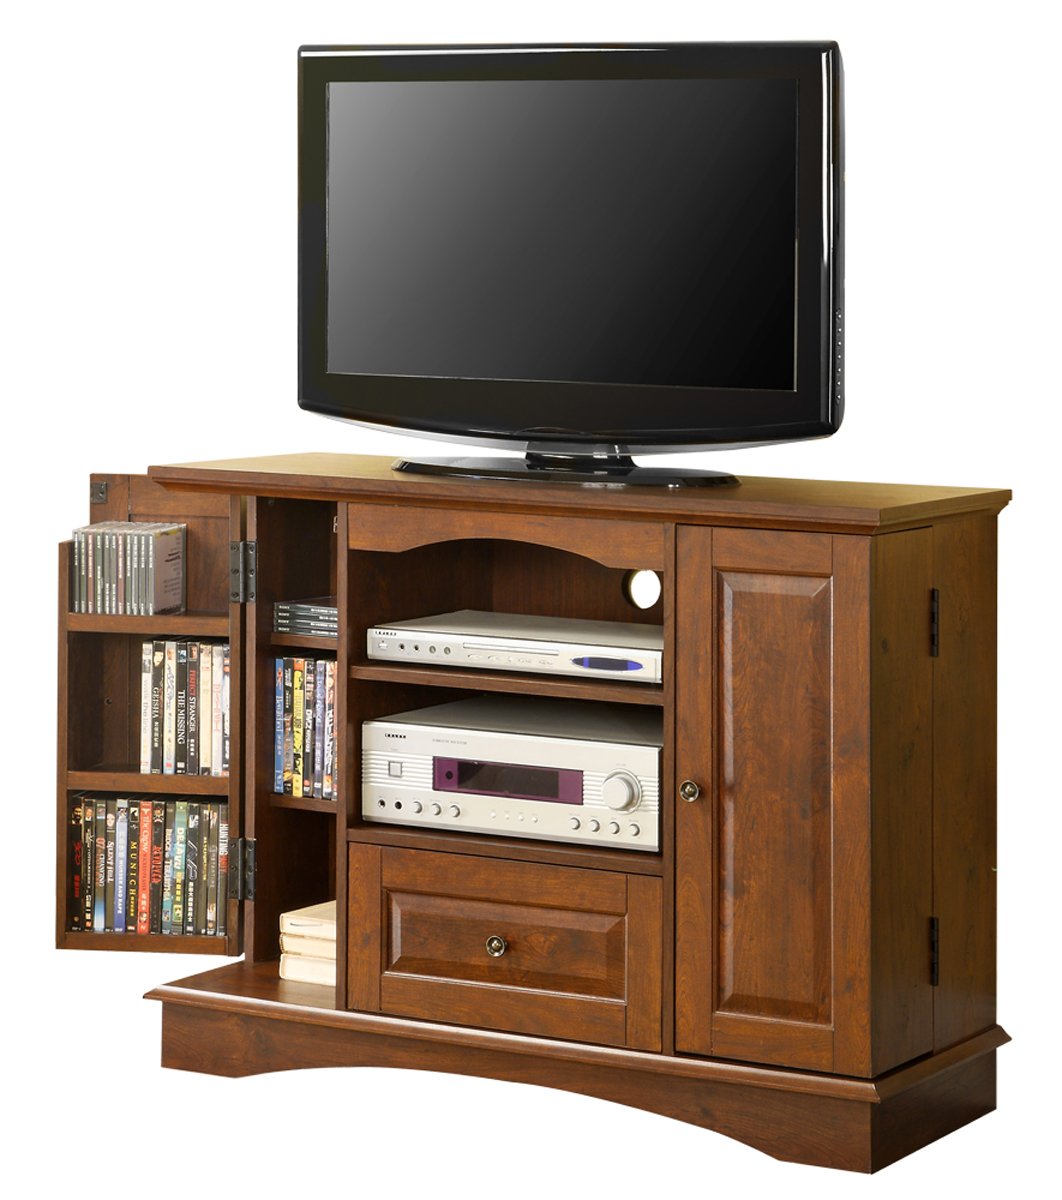 Image Result For Tv Stand For Inch Flat Screen Tv